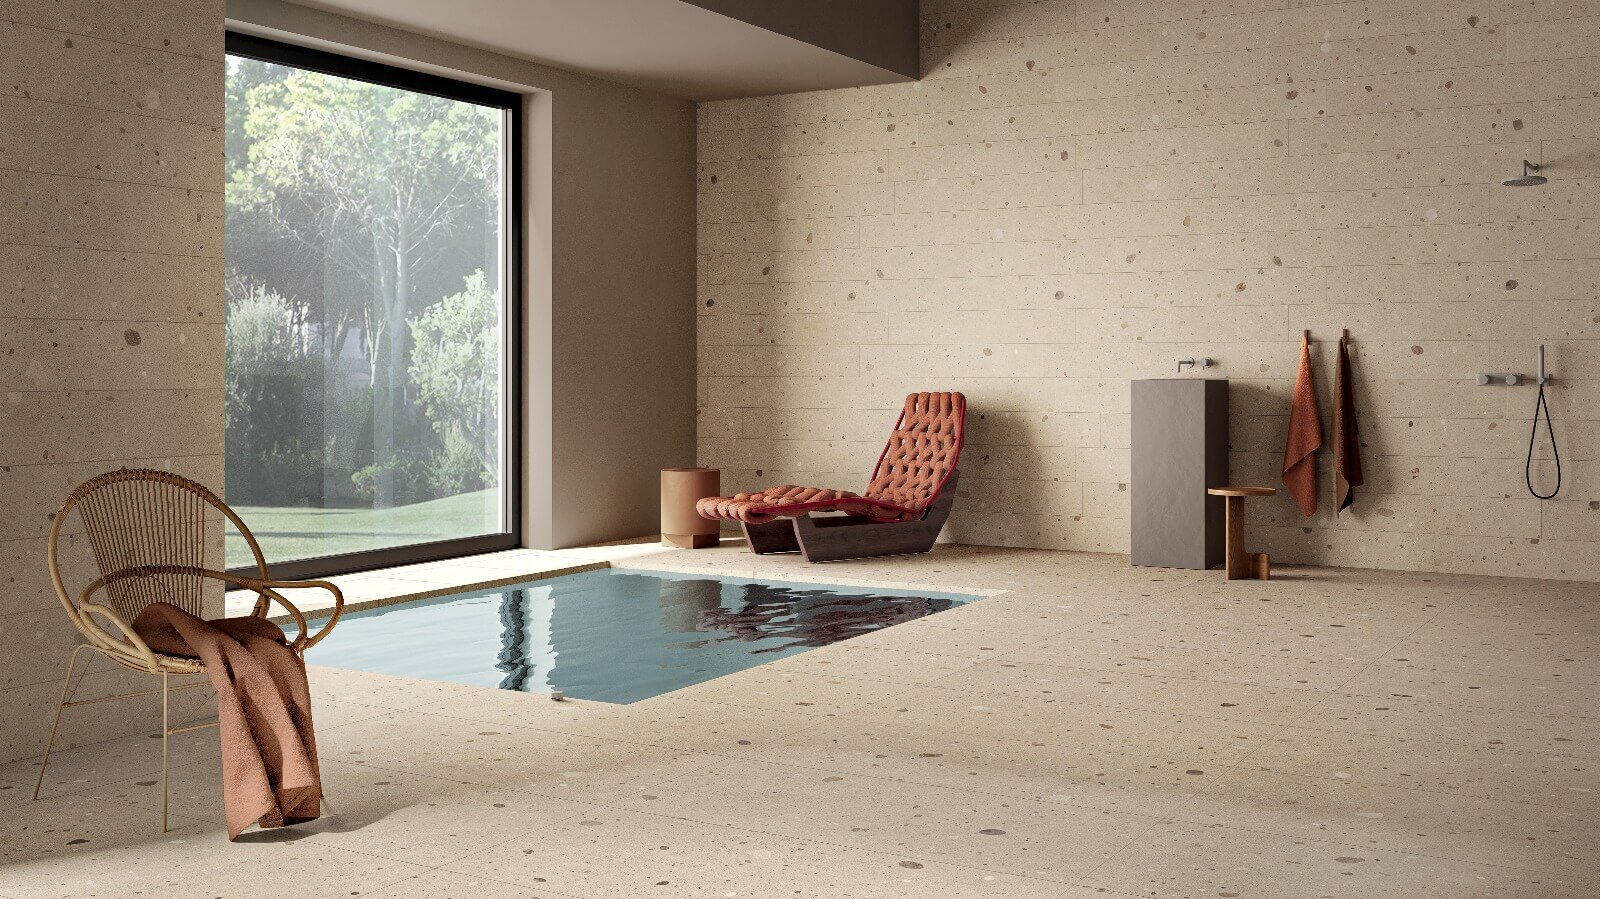 XXL Tile: Italy's Striking New Ceramic Formats